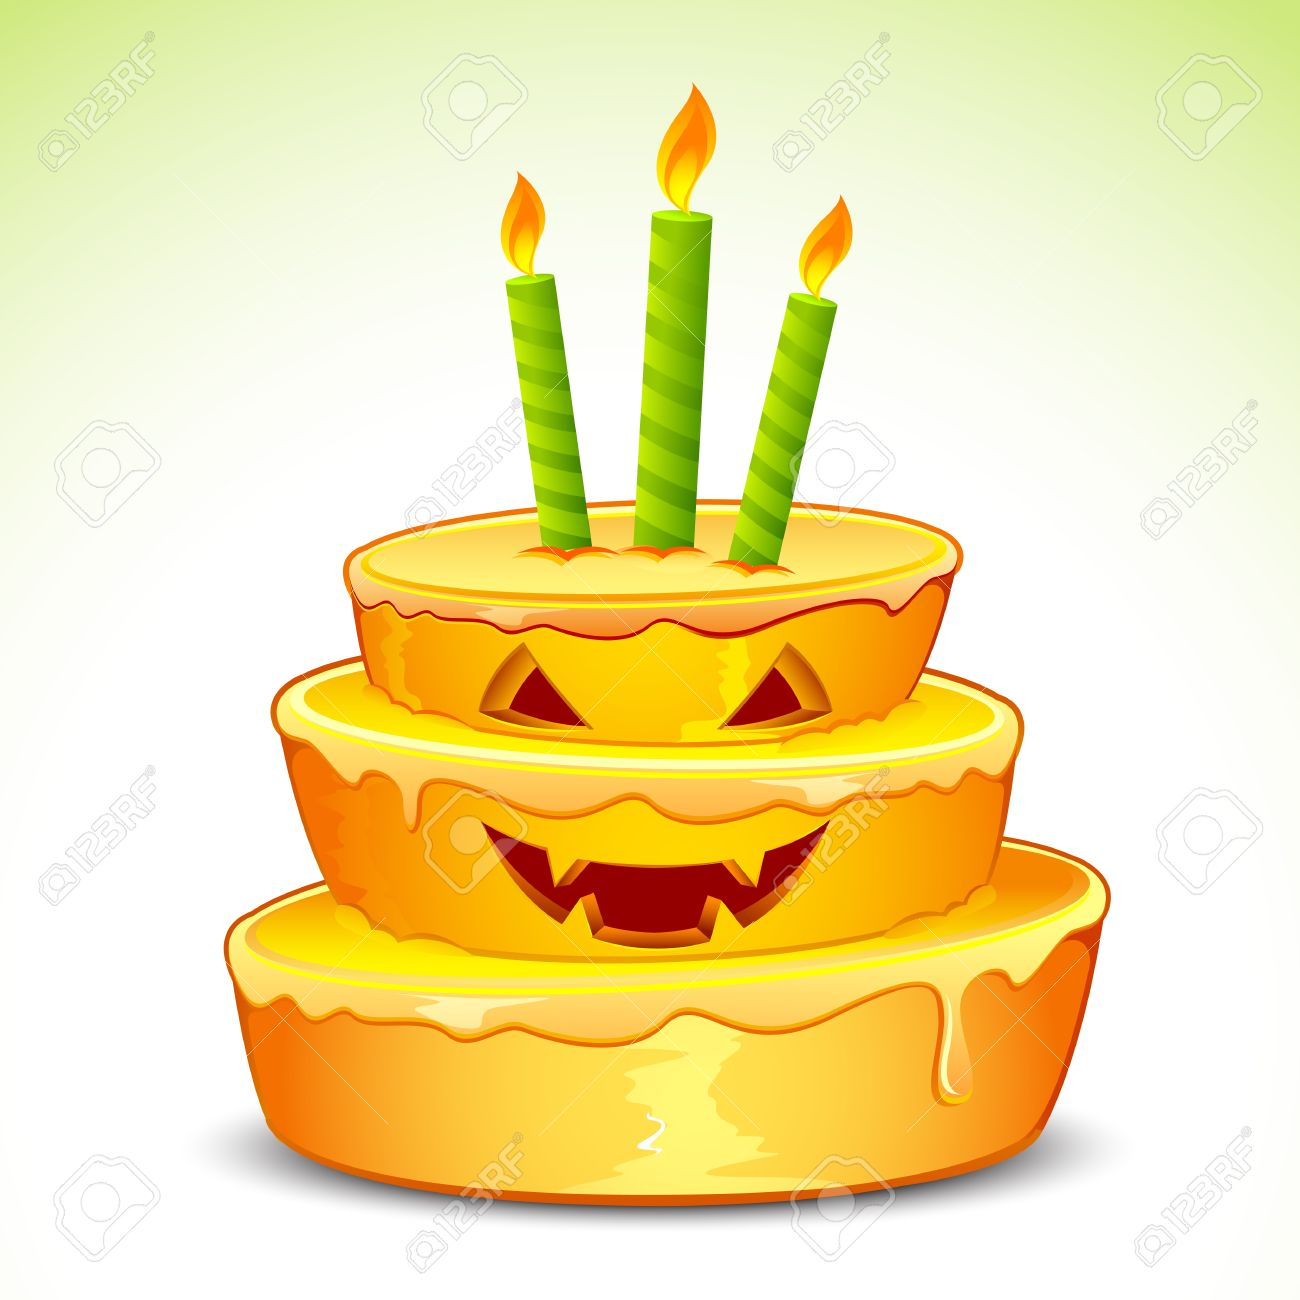 Fall birthday cake clipart image black and white Halloween birthday cake clipart - ClipartFest image black and white